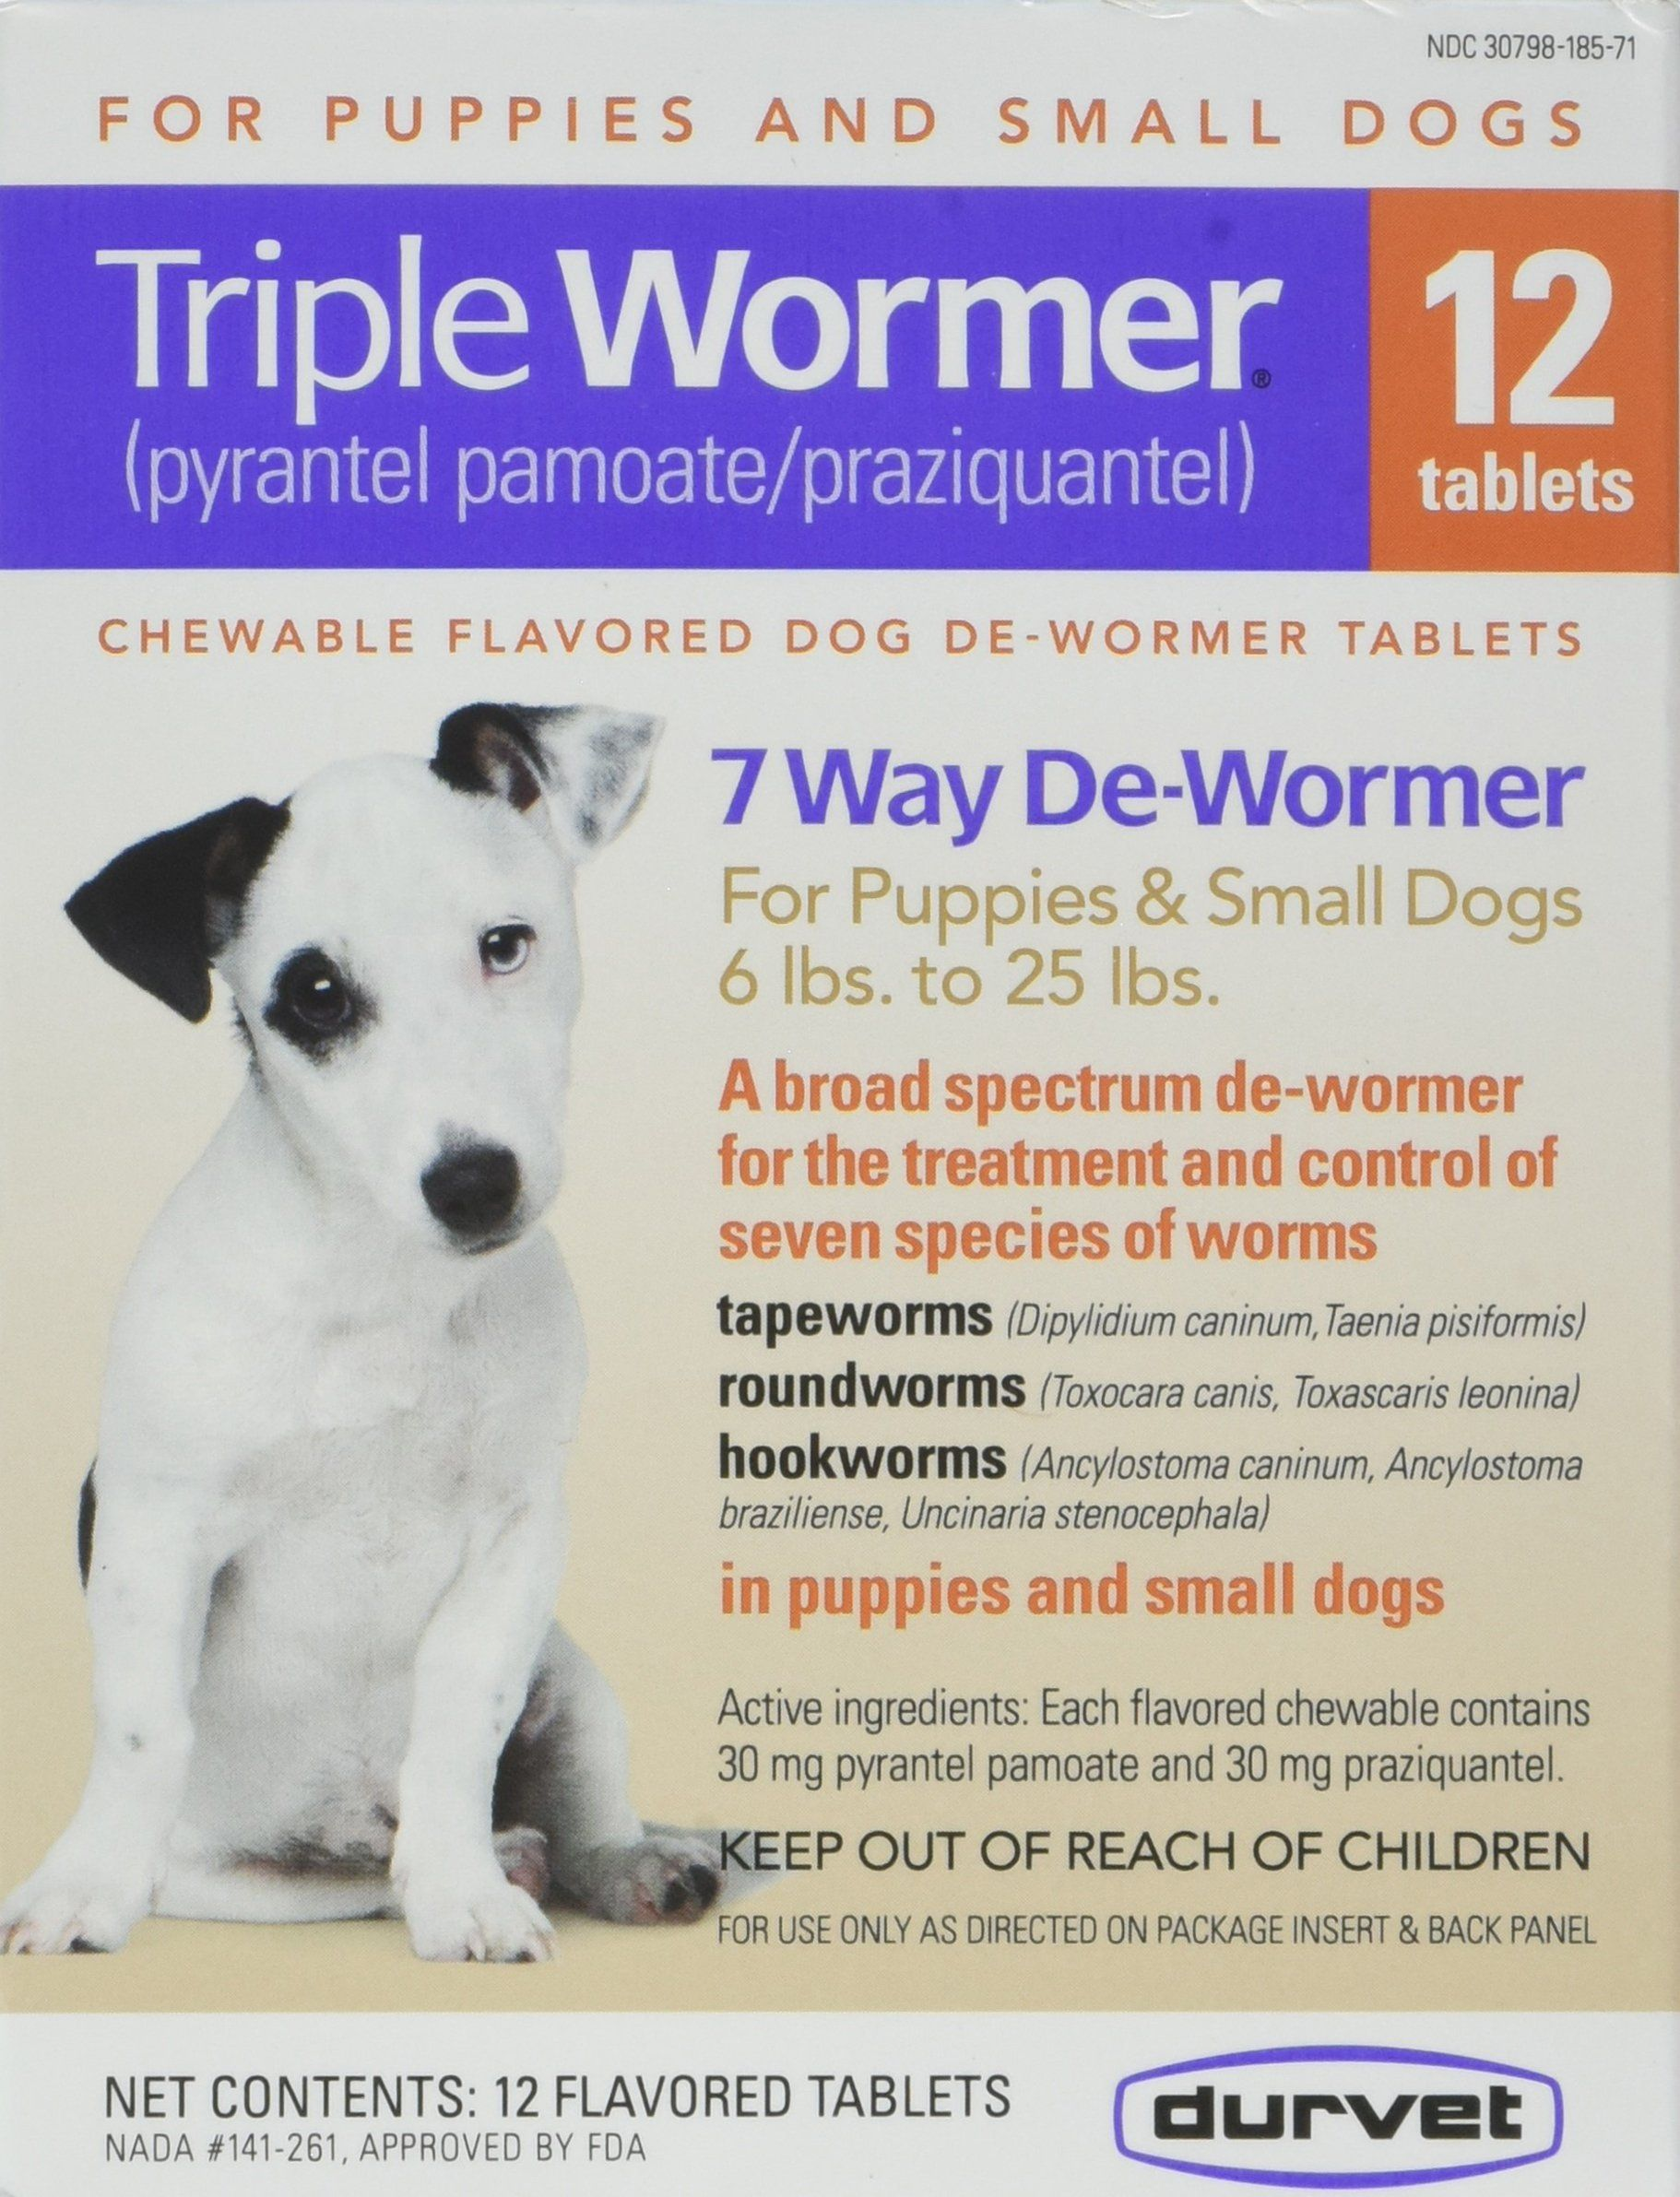 Durvet 12pack triple wormer tablets for puppies and small